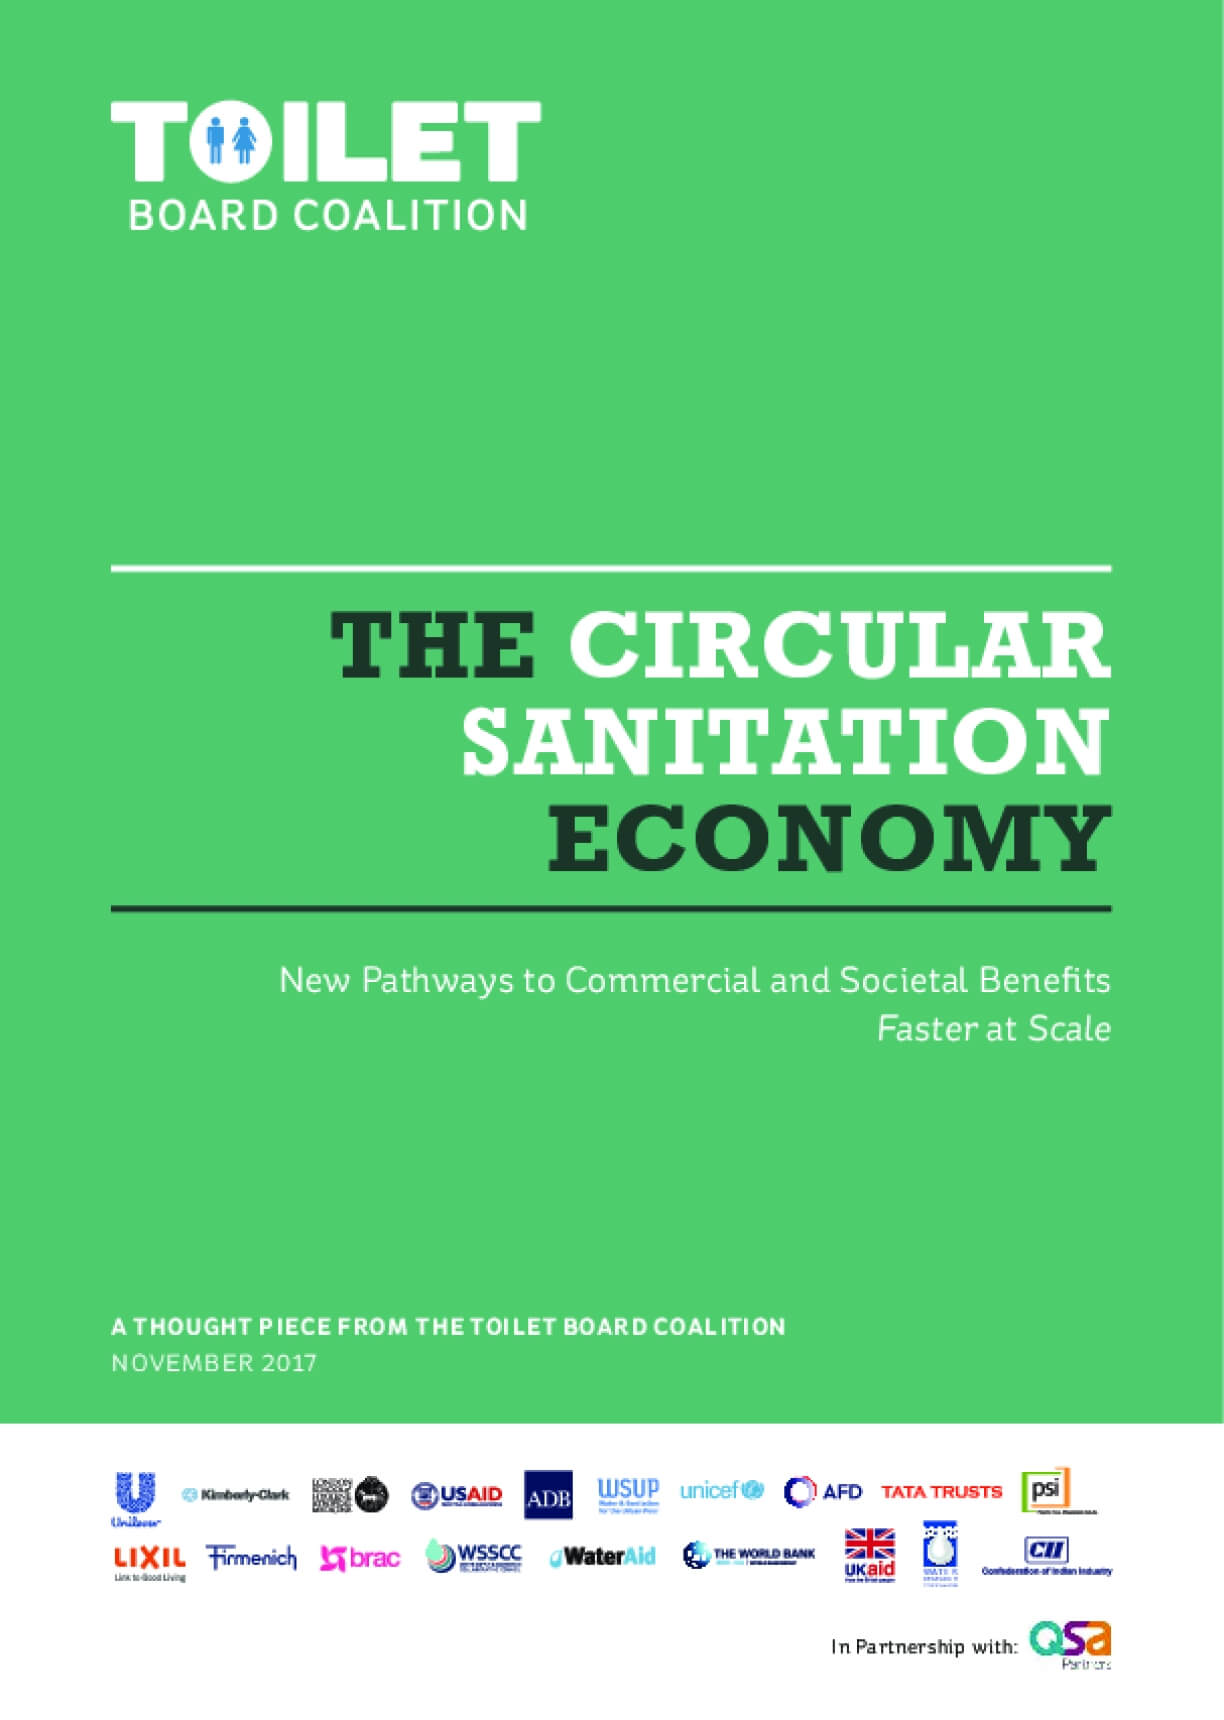 The Circular Sanitation Economy: New Pathways to Commercial and Societal Benefits - Faster at Scale